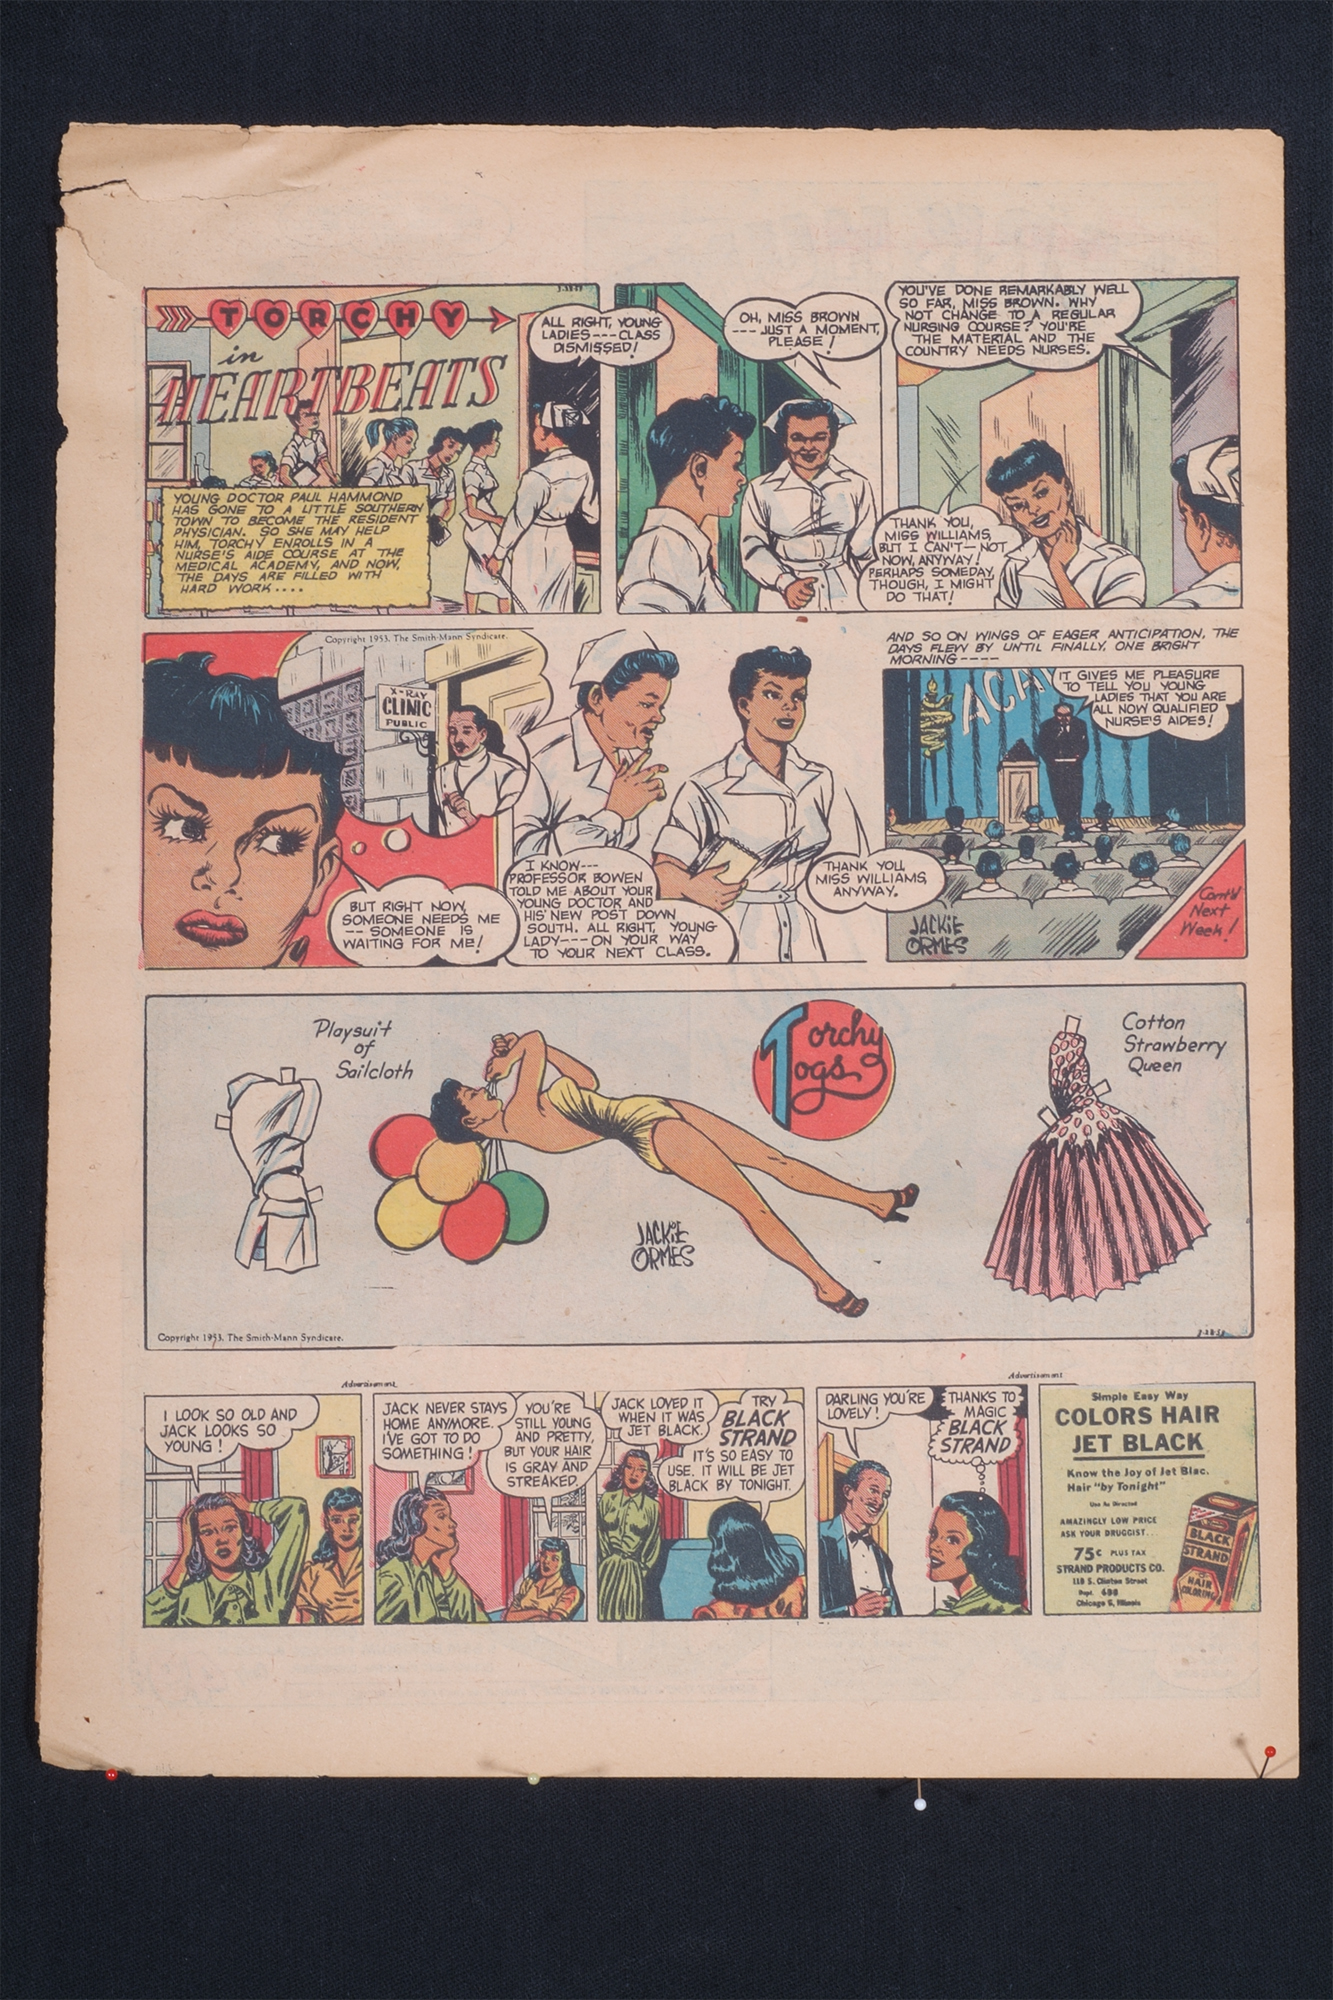 Jackie Ormes (American, b. 1911 - 1985) Torchy in Heartbeats, 1953, Newsprint sheet, 10.5 x 15 inches, Published by the Pittsburgh Courier